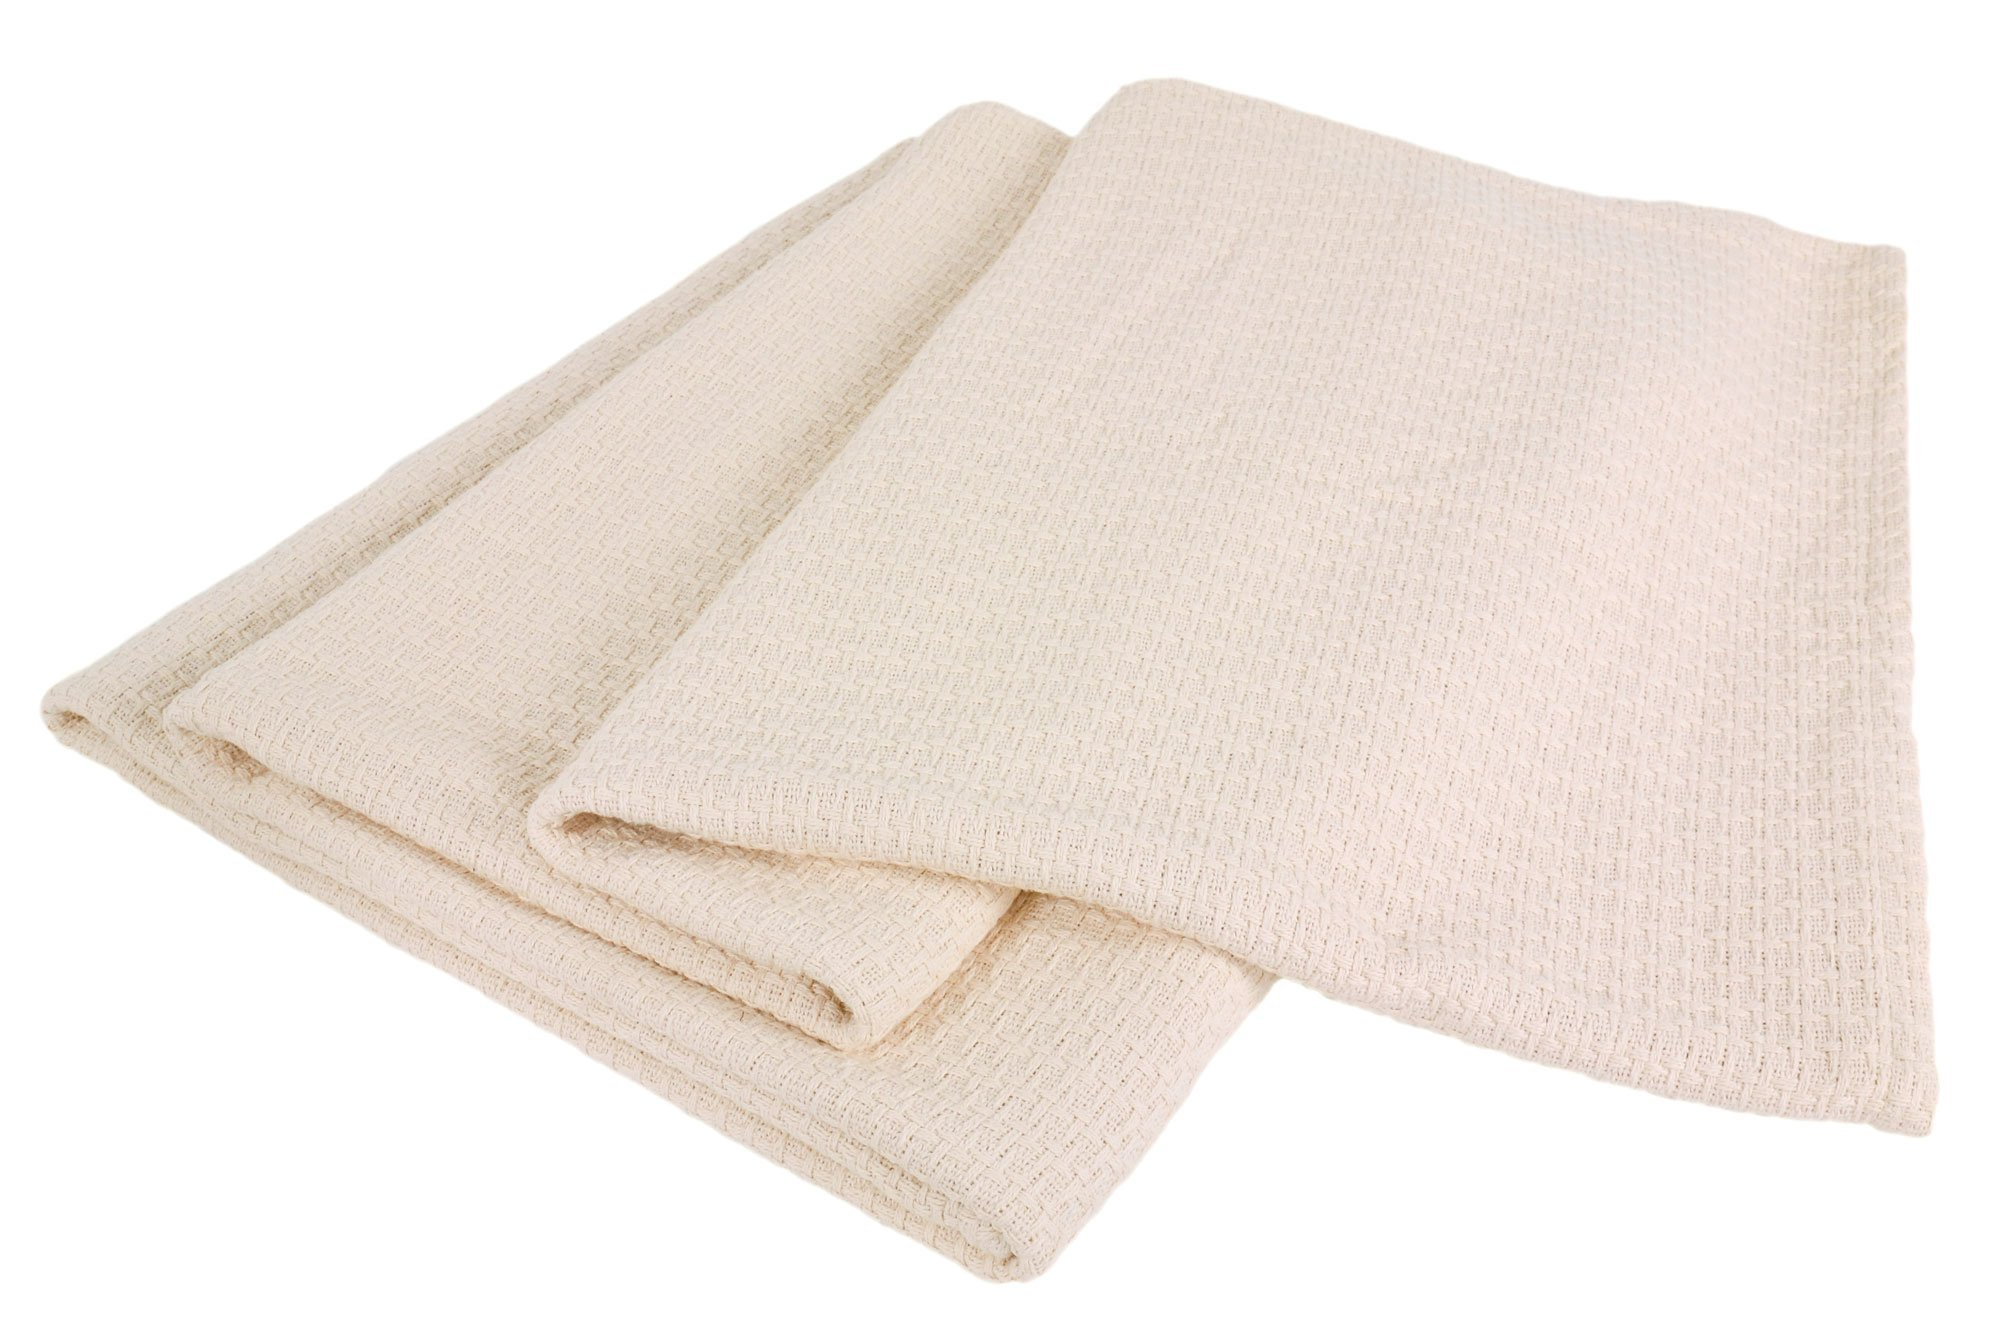 Elite Home Grand Hotel All-Natural 100-Percent Cotton Basket Woven Blanket King Size, Ivory